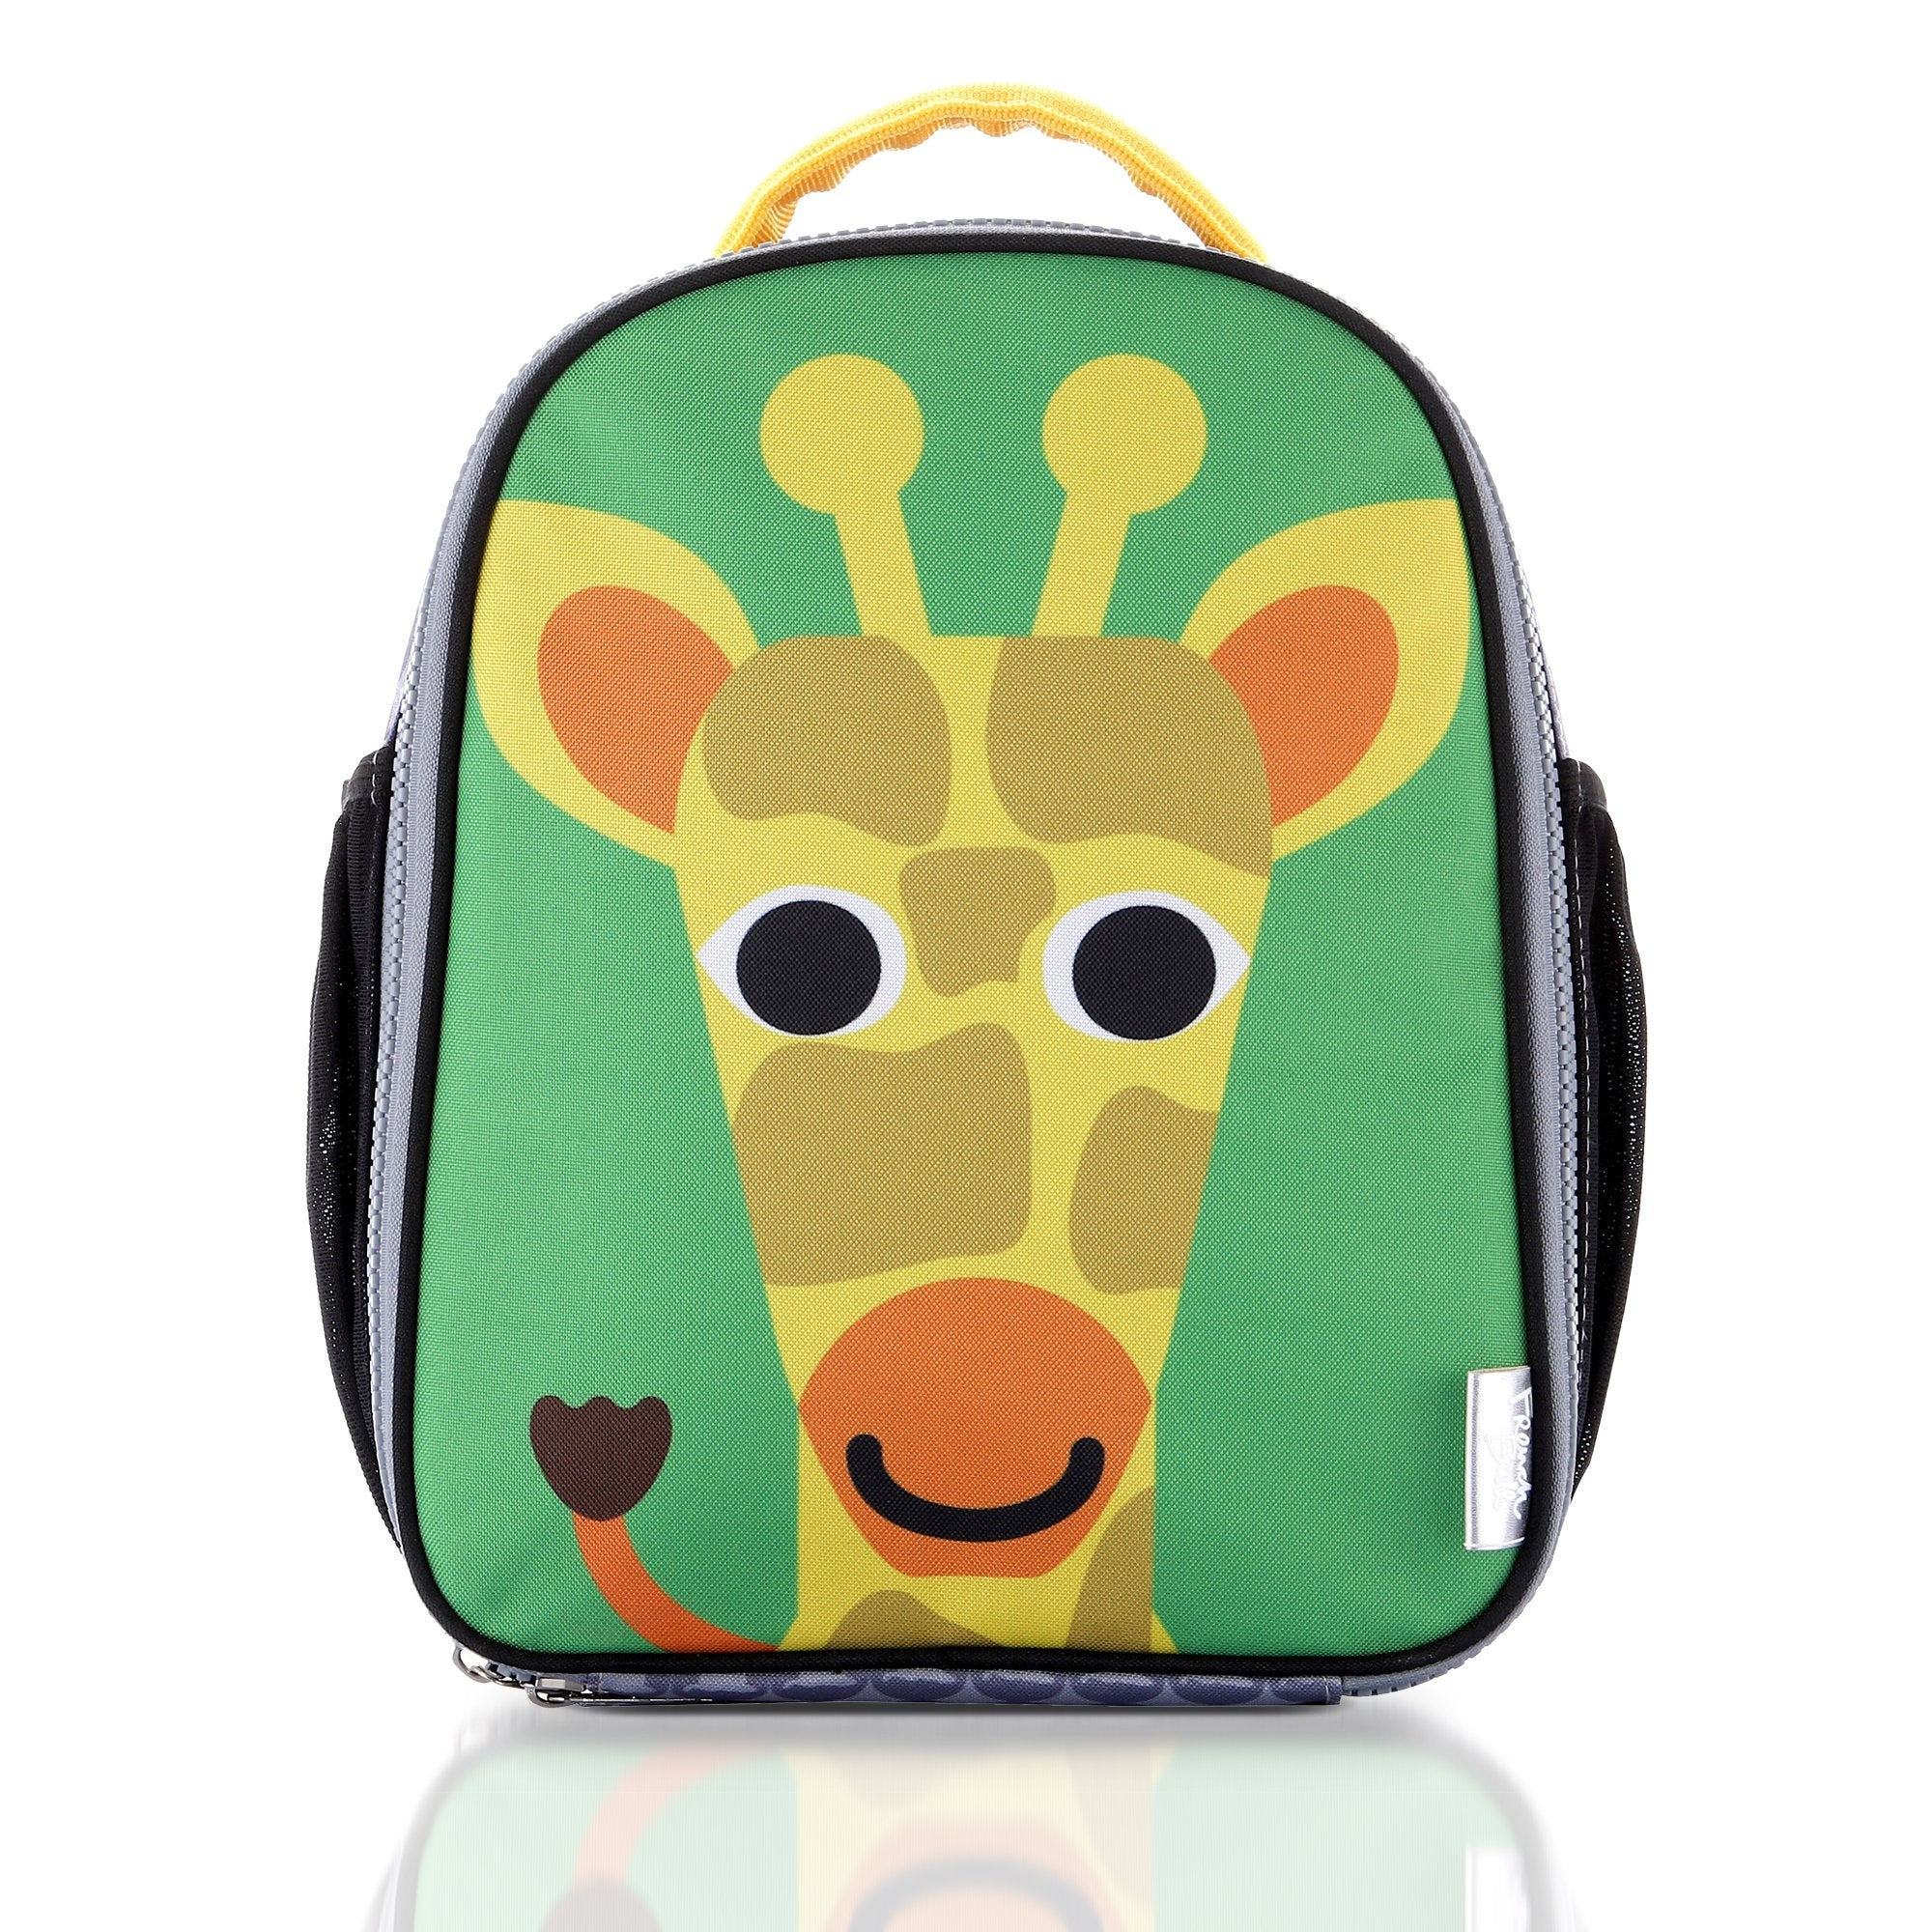 FRENCH BULL KIDS LUNCH BAG